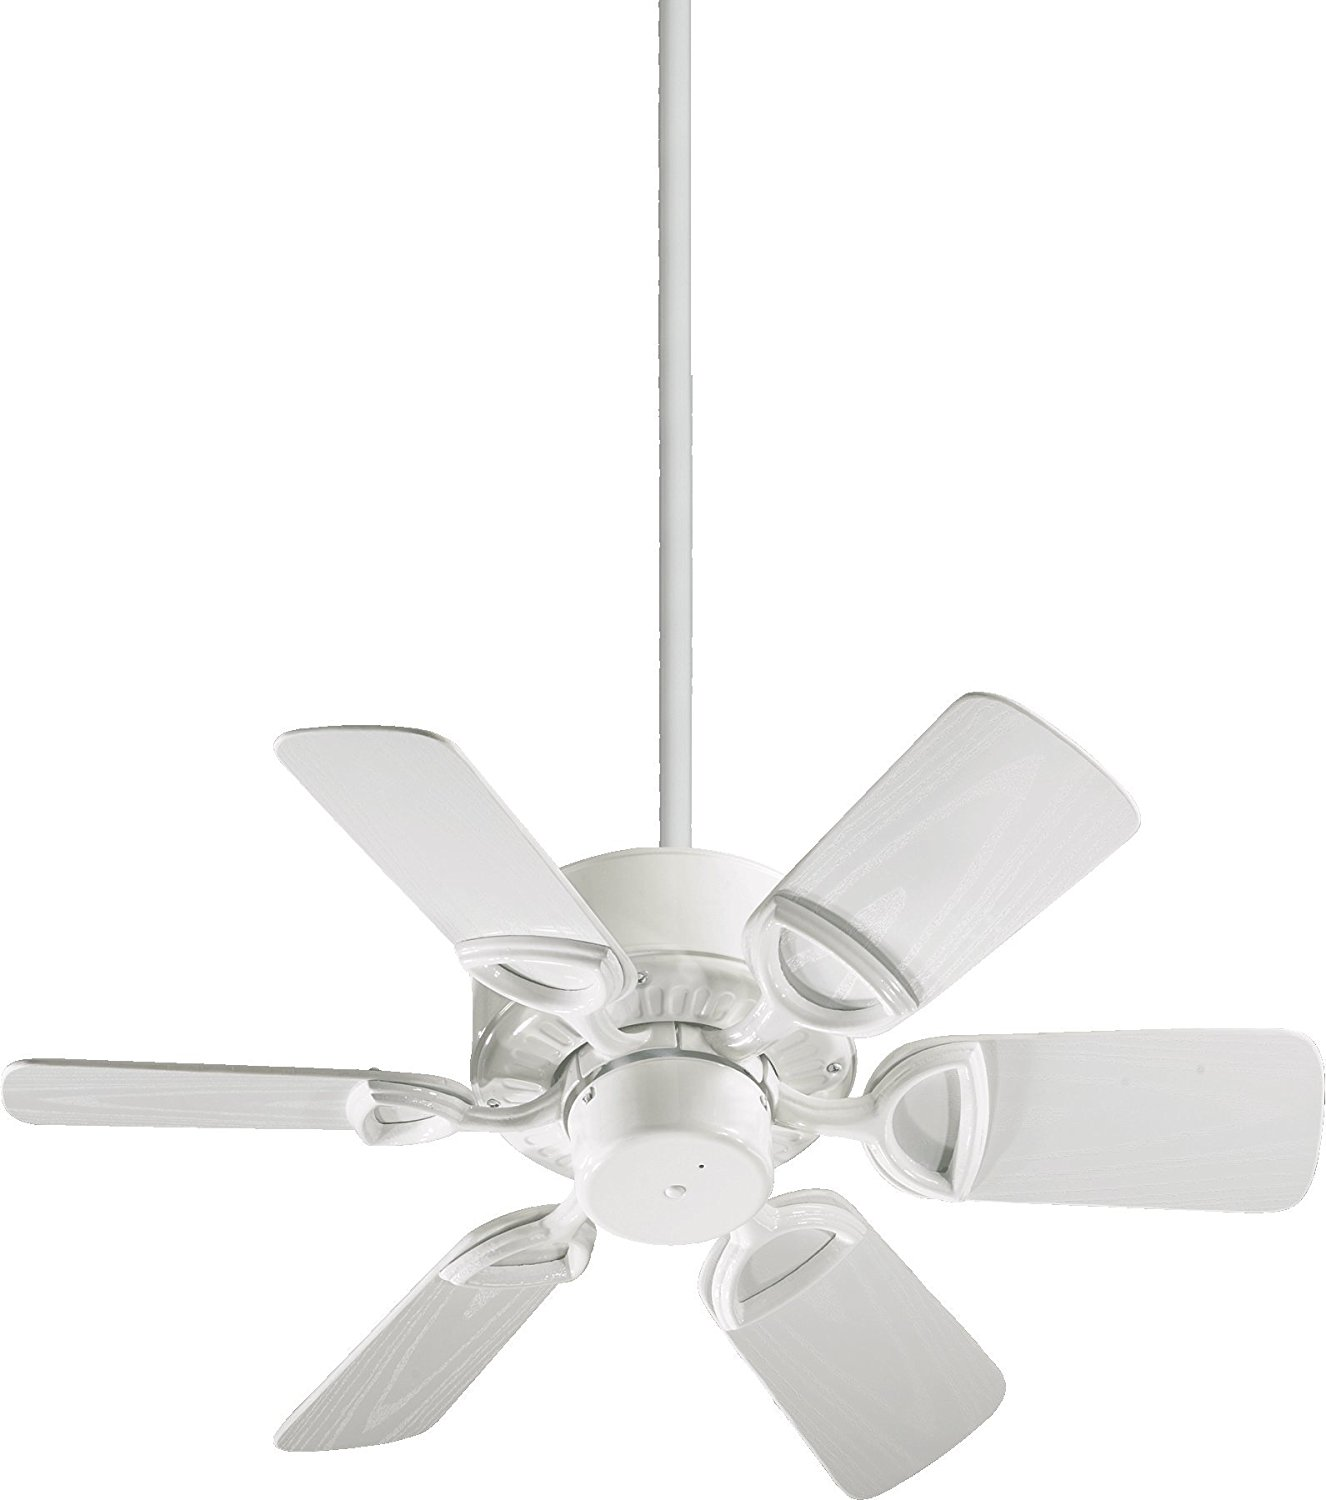 Quorum International 143306-6 Estate 6-Blade Patio Ceiling Fan with White ABS Blades, 30-Inch, Gloss White Finish